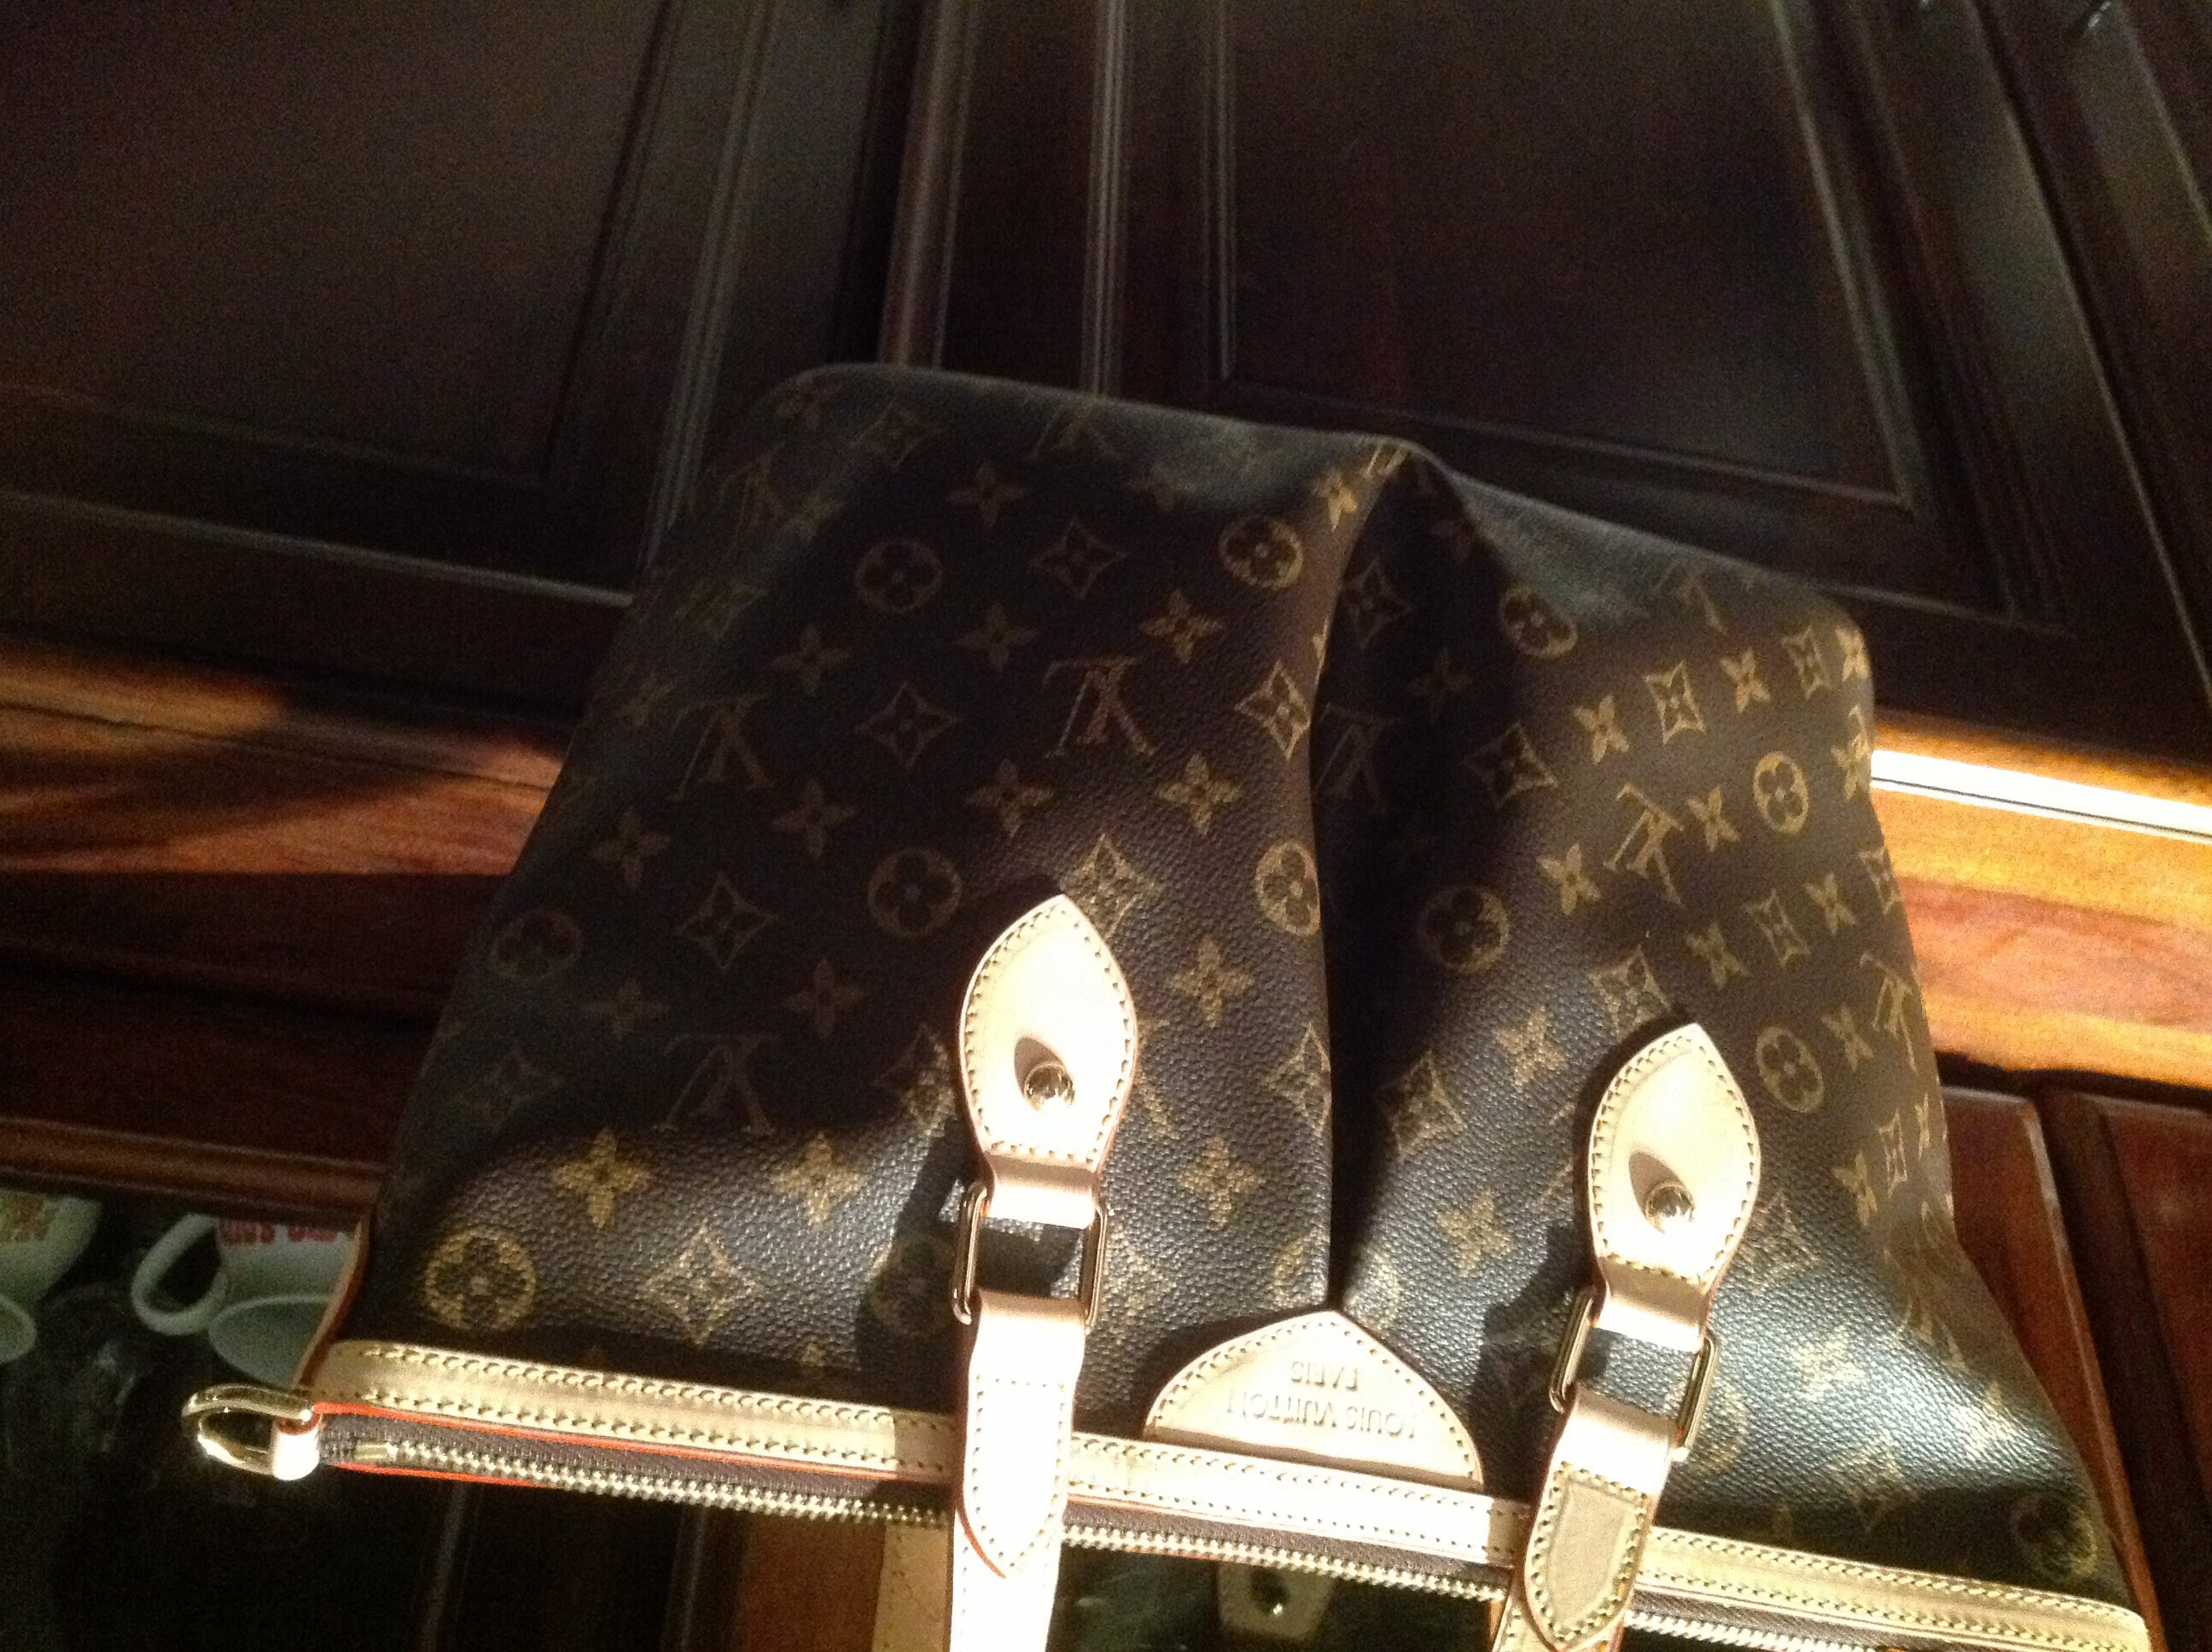 Louis Vuitton. The grand bazaar was just a bit overwhelming when we  visited. It is a gigantic structure e5abee6a1bd8c